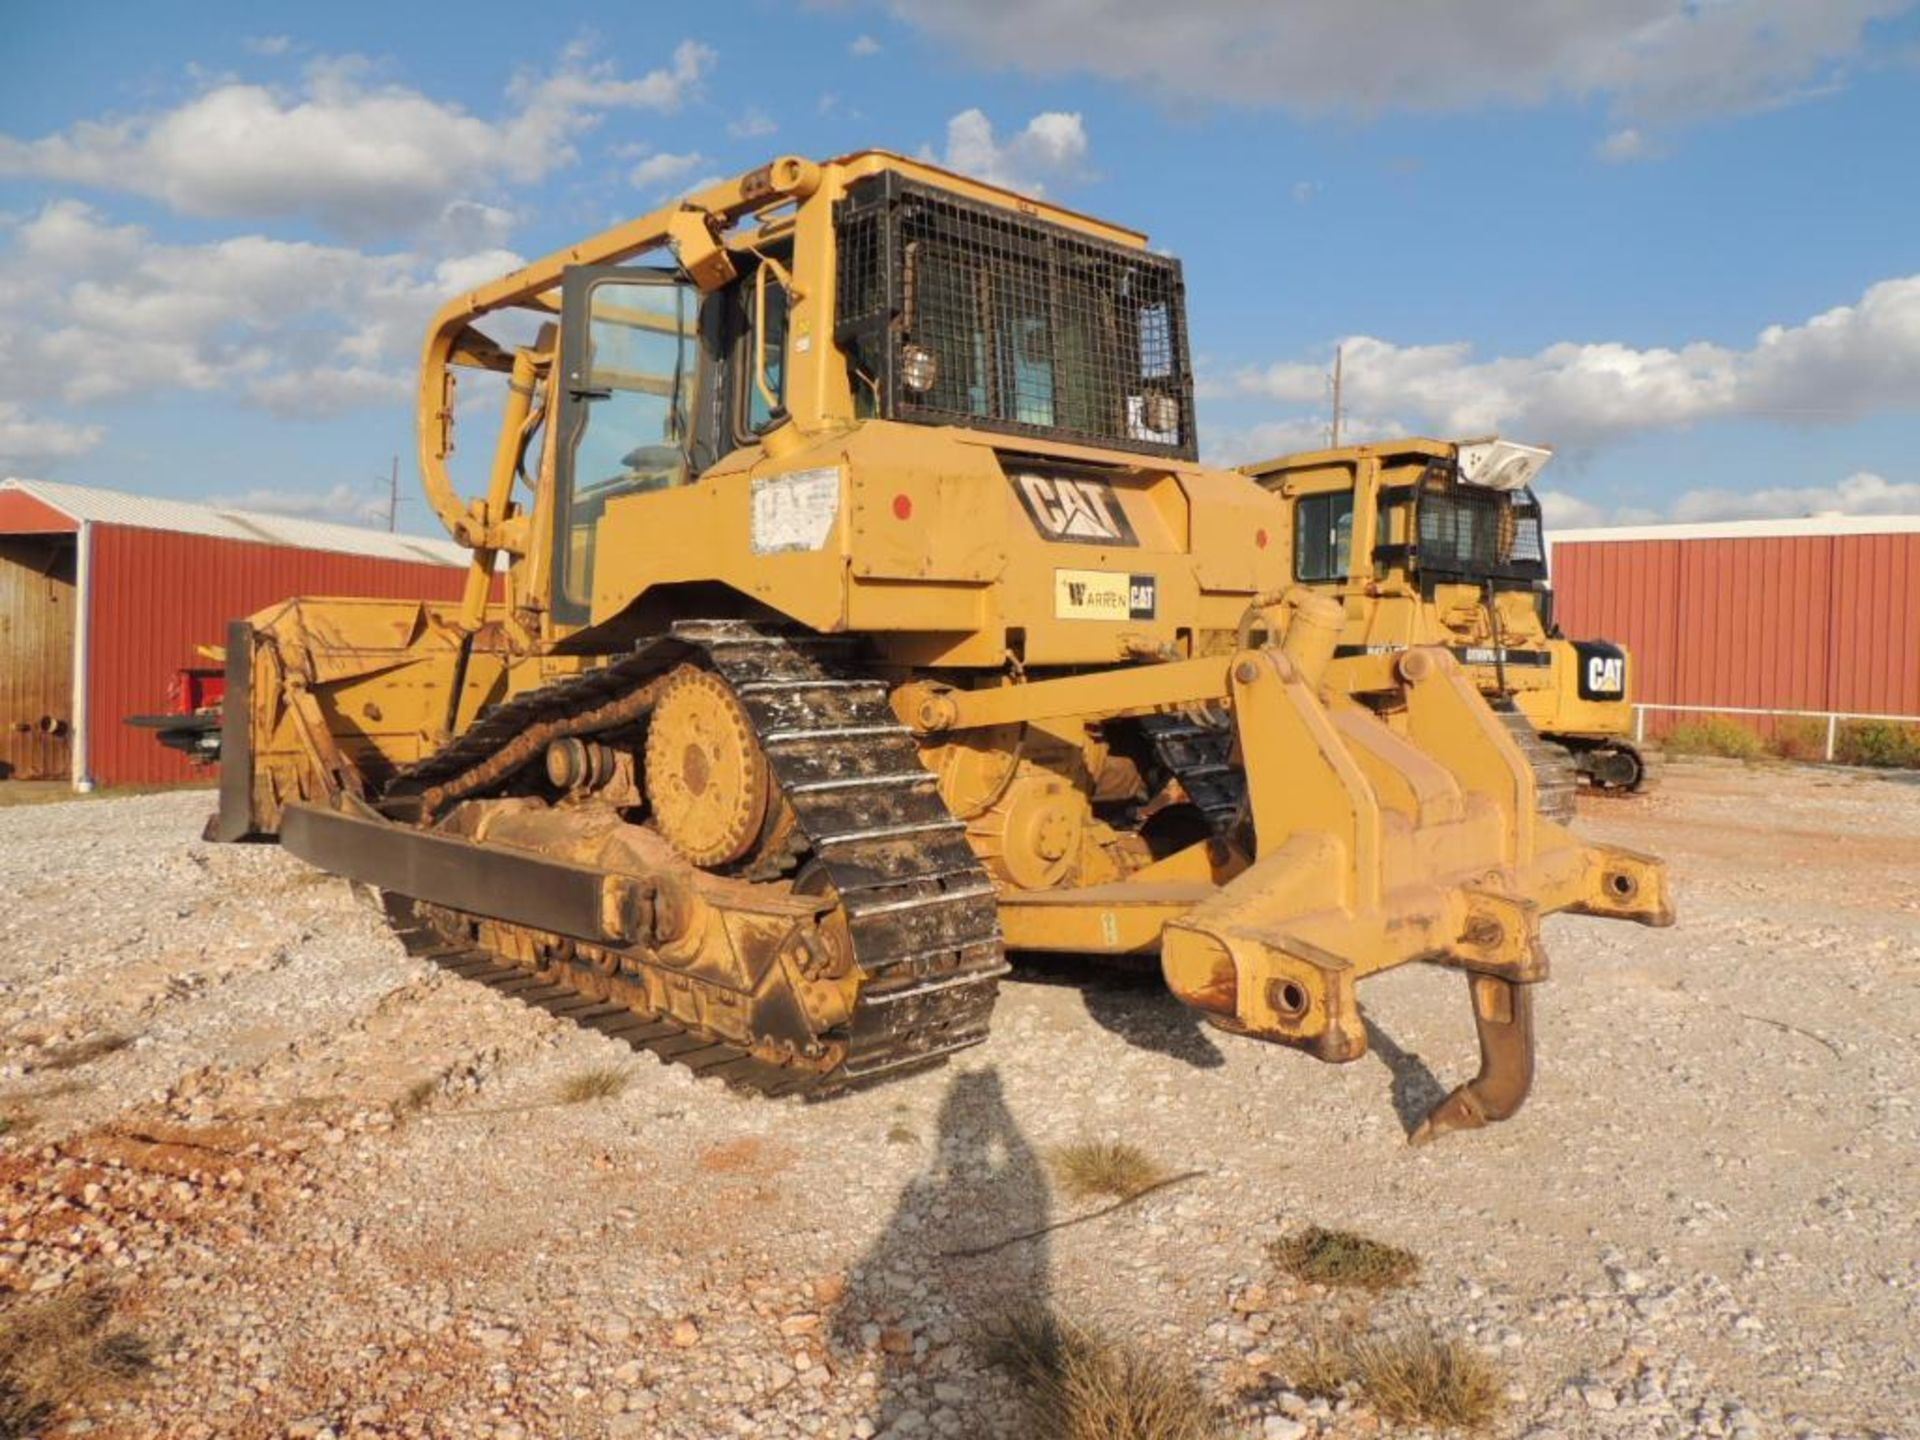 2007 Caterpillar D6T XL Crawler Tractor w/ Ripper, 90 % Remaining on Undercarrige, EROPS, Semi-U - Image 5 of 10